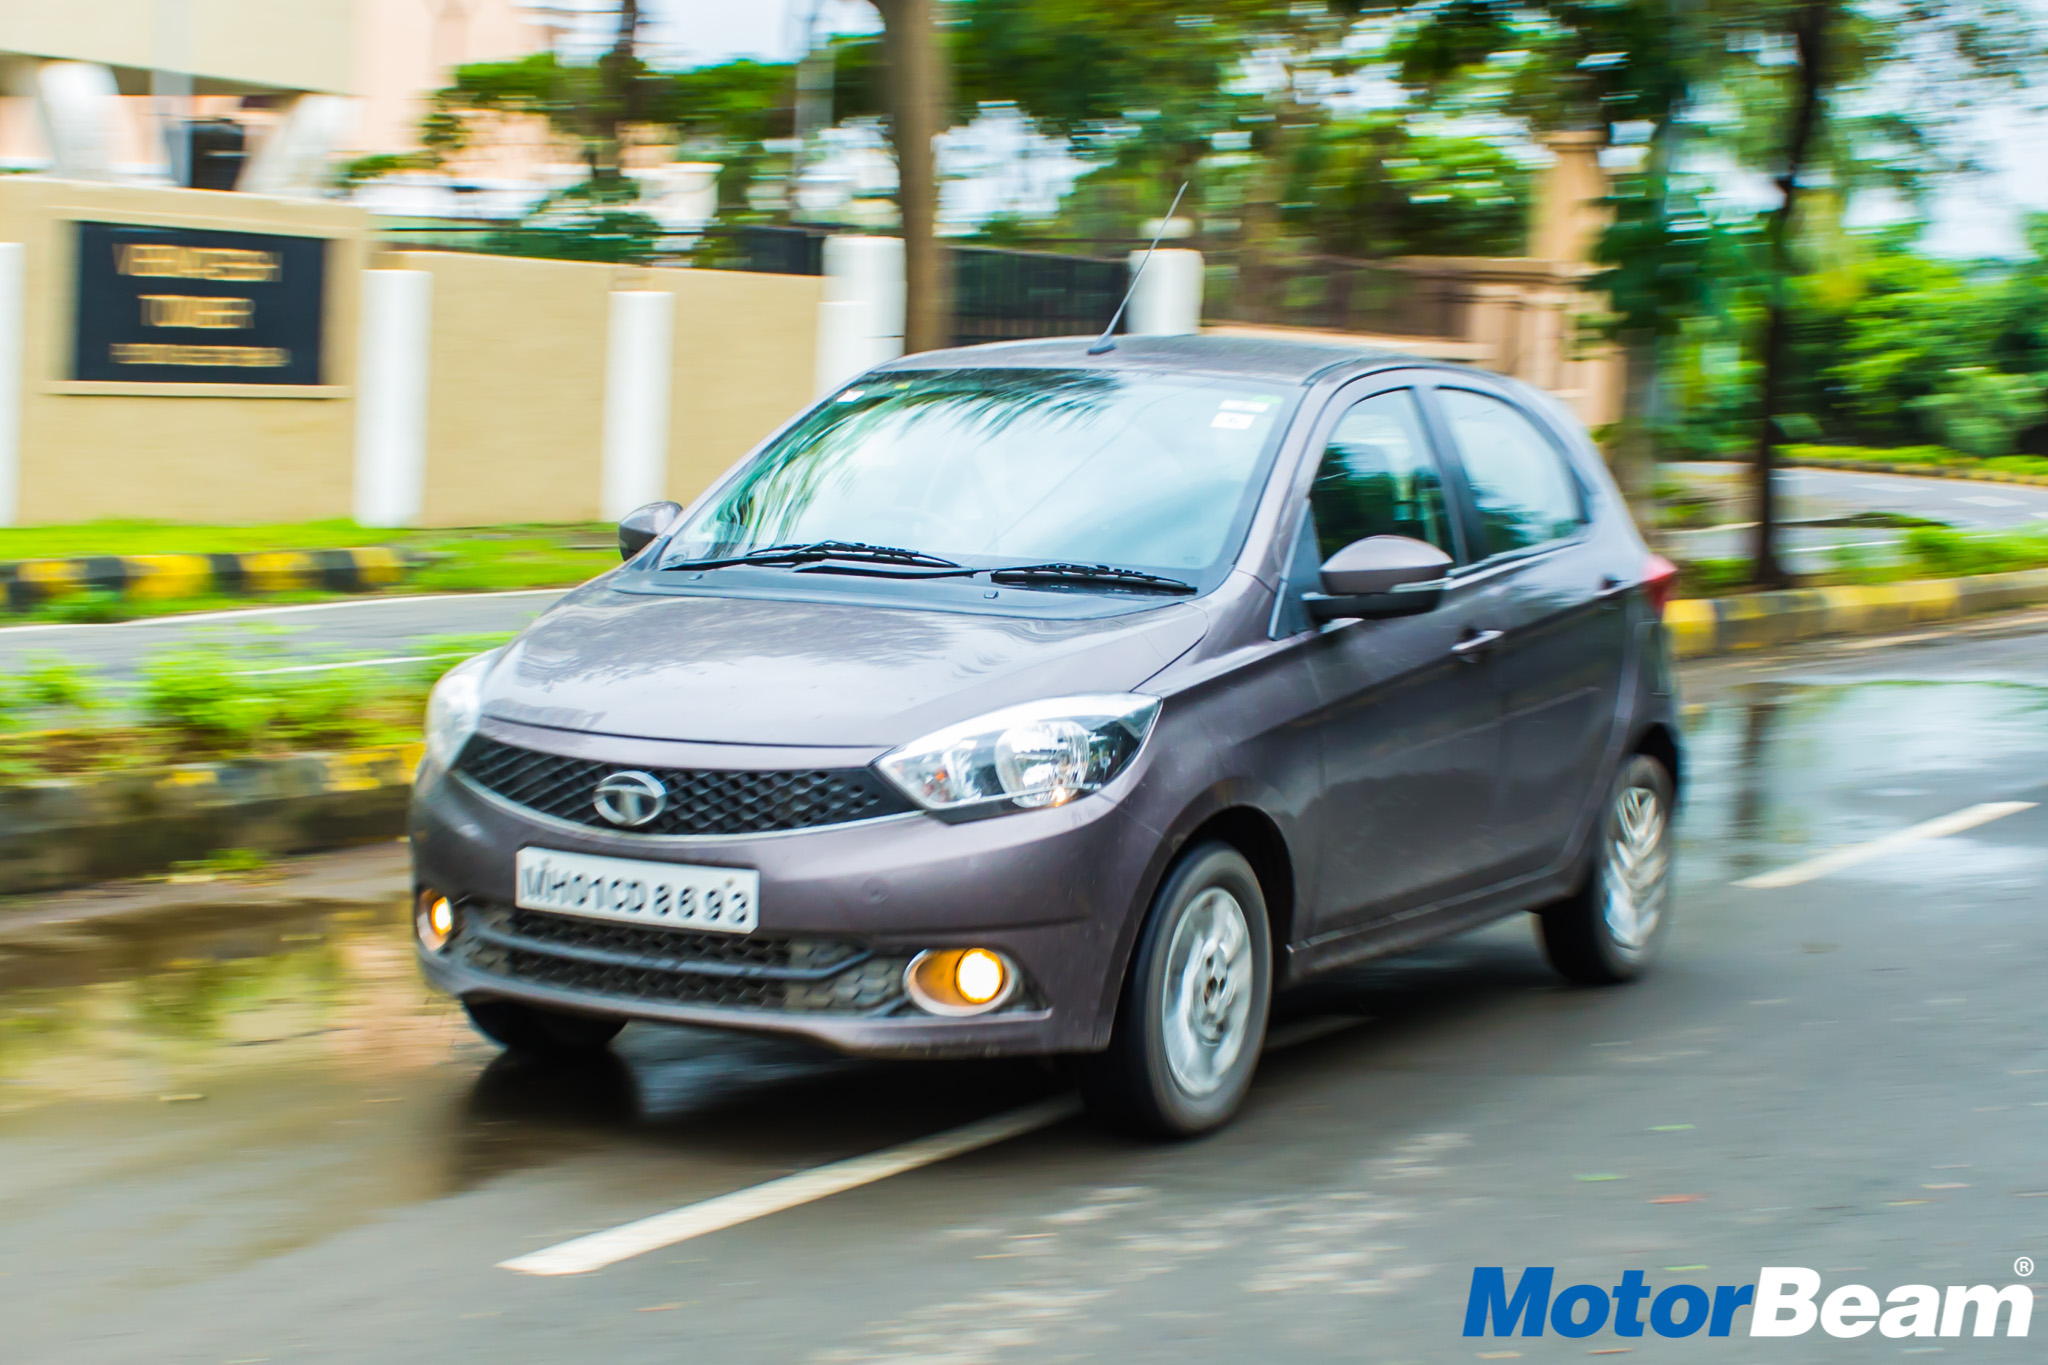 Tata Diesel Cars With Small Capacity Engines To Phase Out